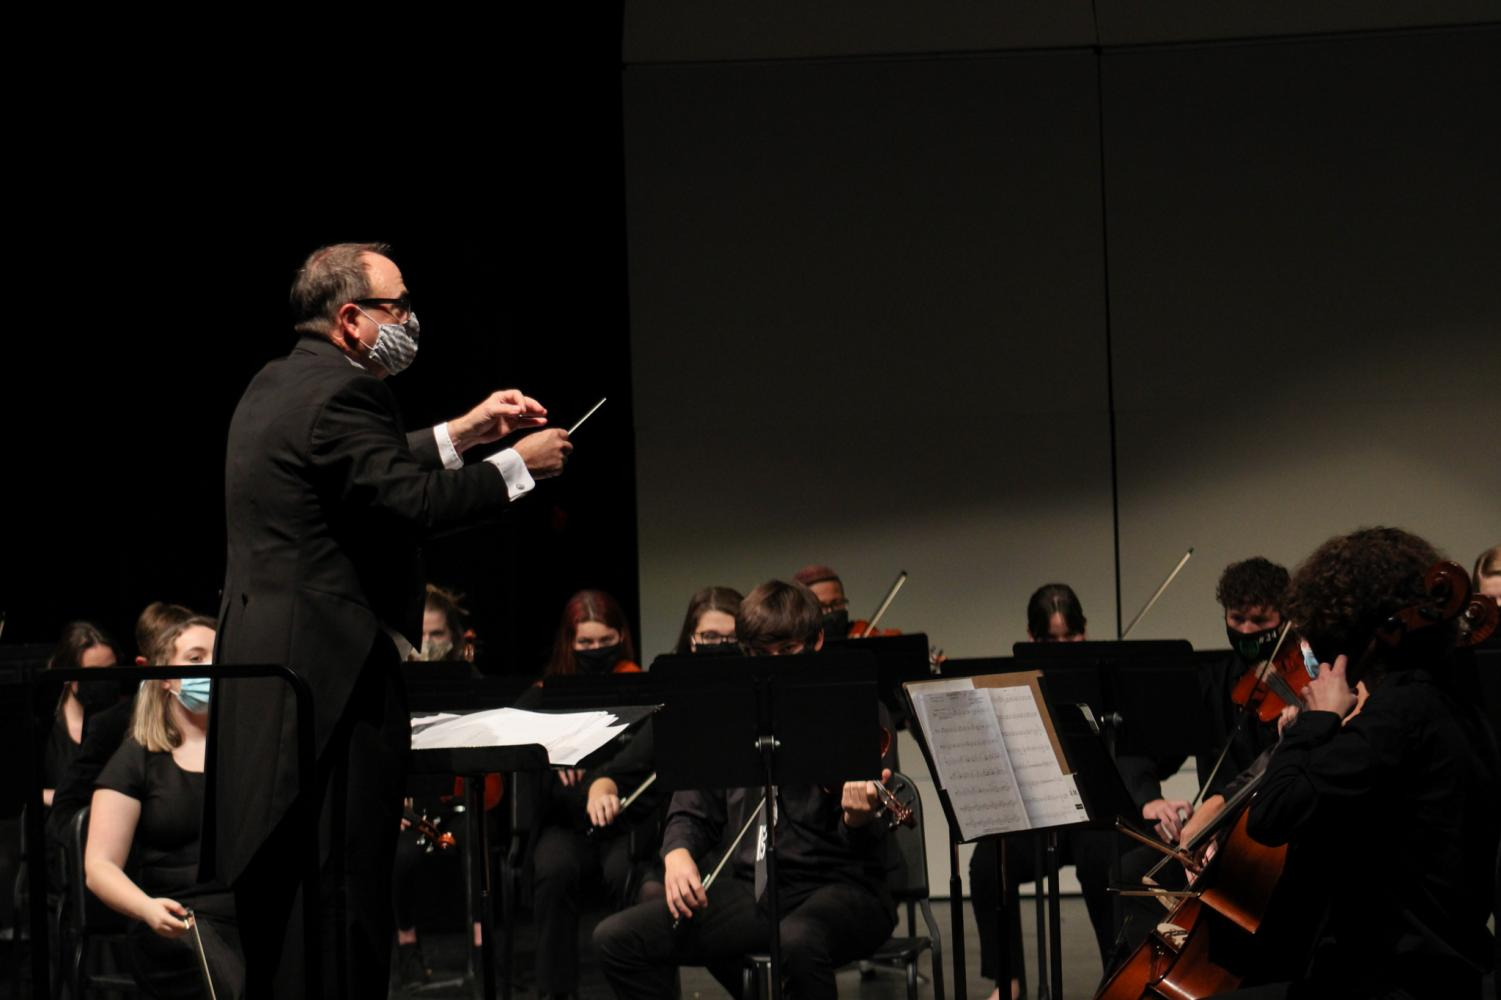 Philharmonic+orchestra+concert+%28photos+by+Hailey+Jeffery%29